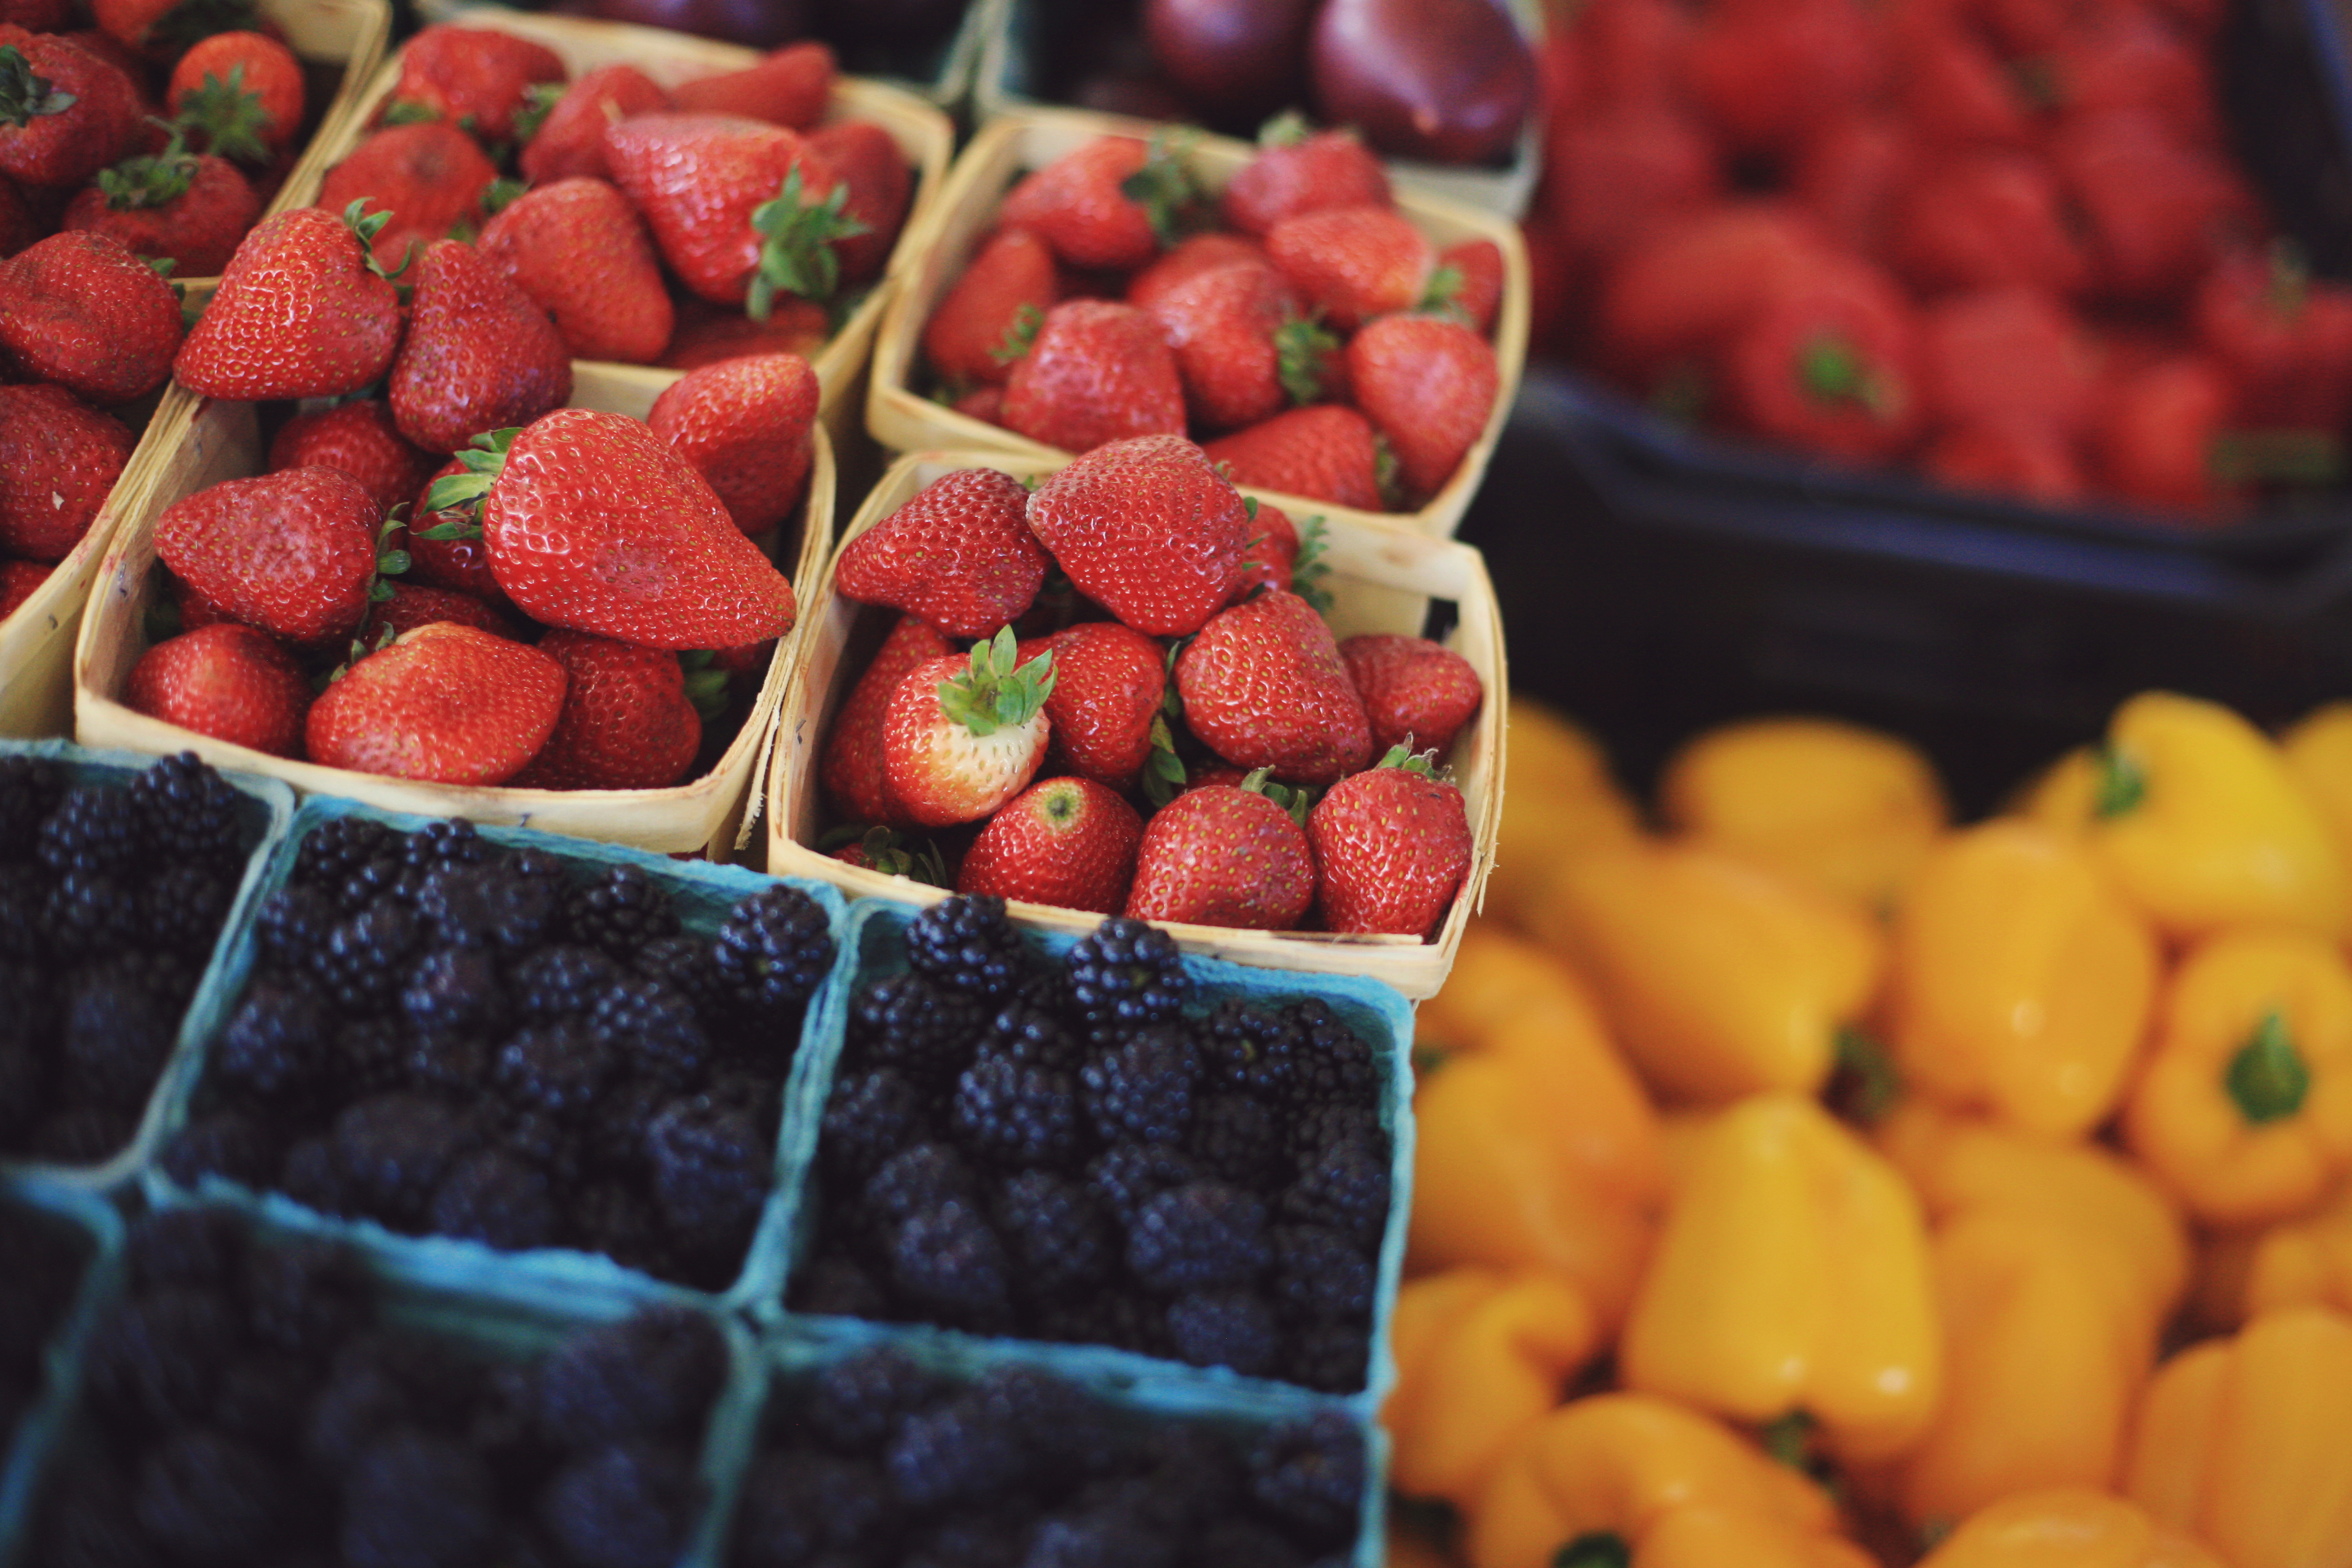 A table of fresh picked berries and peppers at a local mid-west farmer's market.